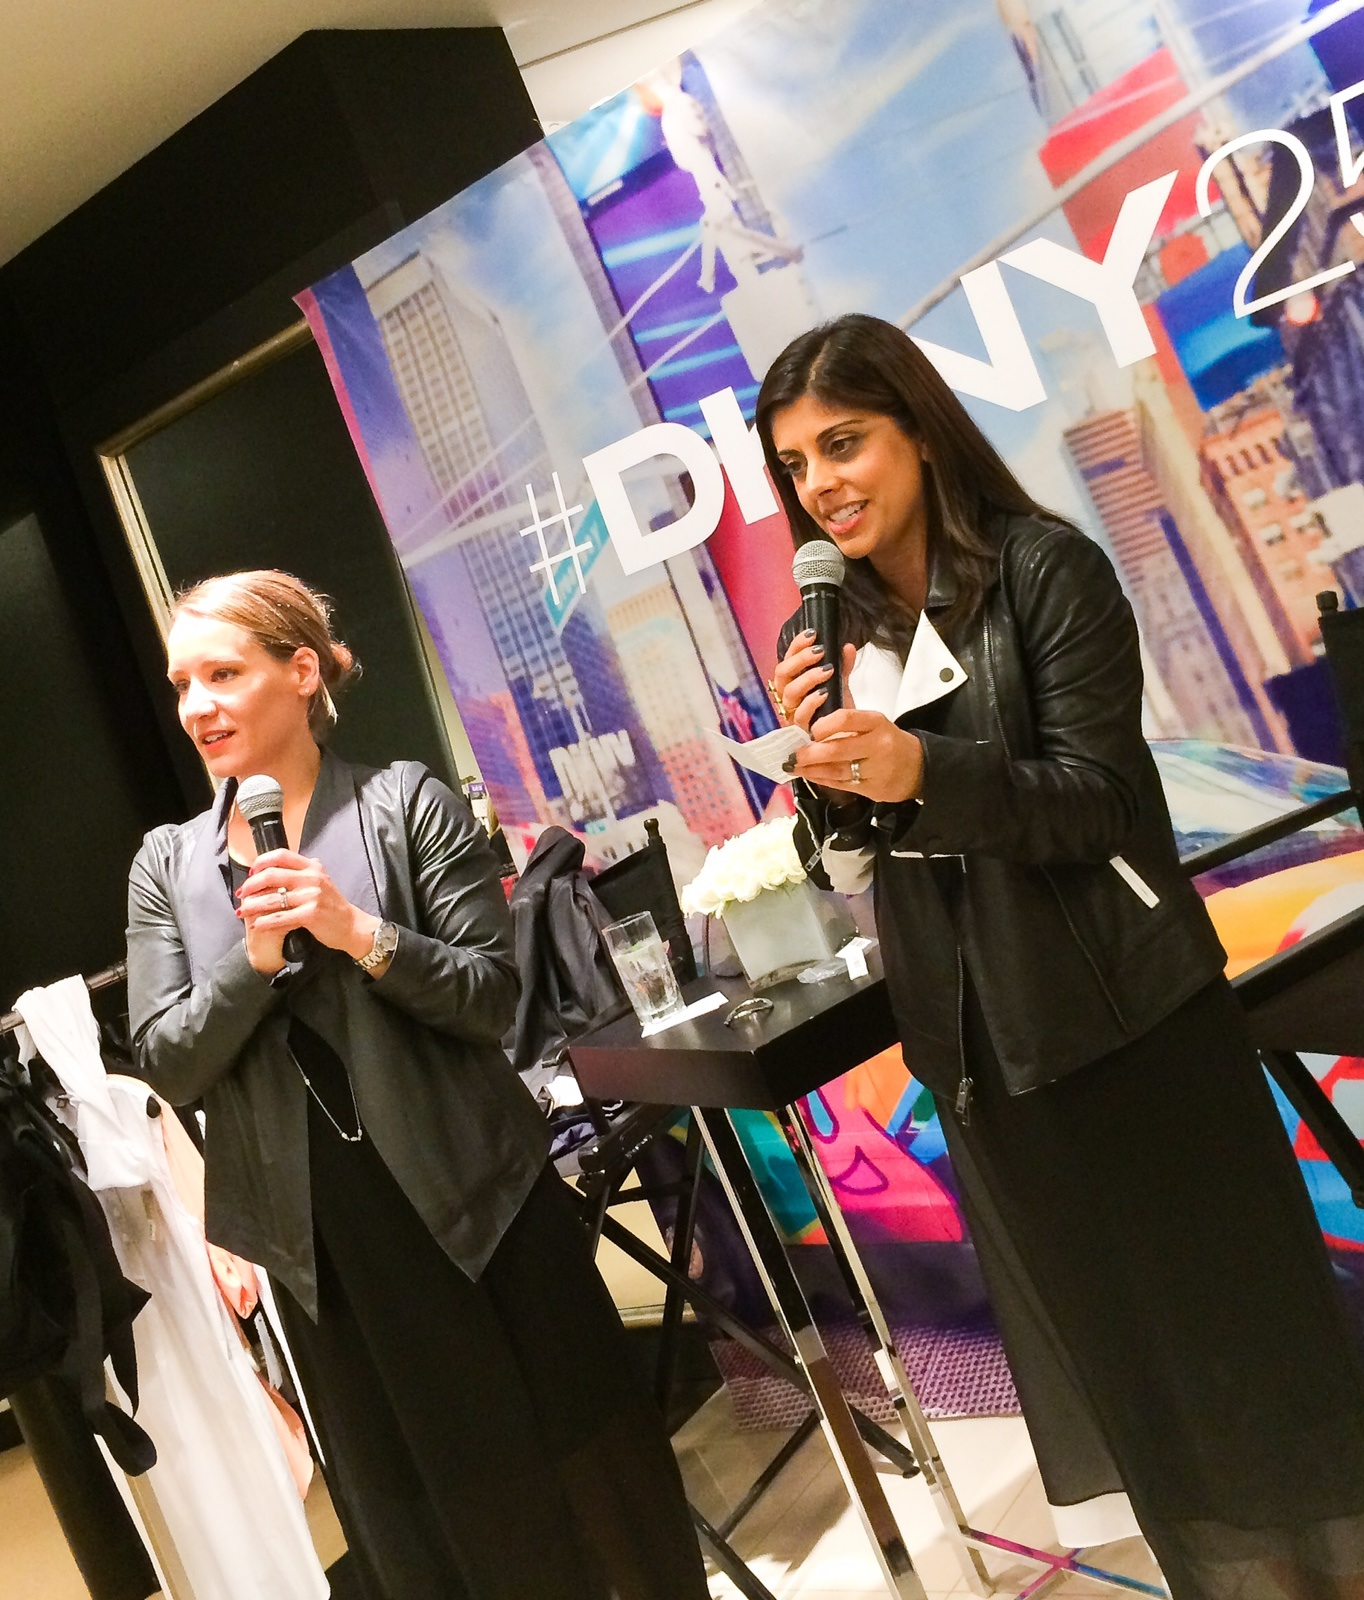 On Saturday, May 10th, Style Expert, Naina Singla, co-hosted a special DKNY 25th Anniversary fashion show at Bloomingdales Tysons Corner